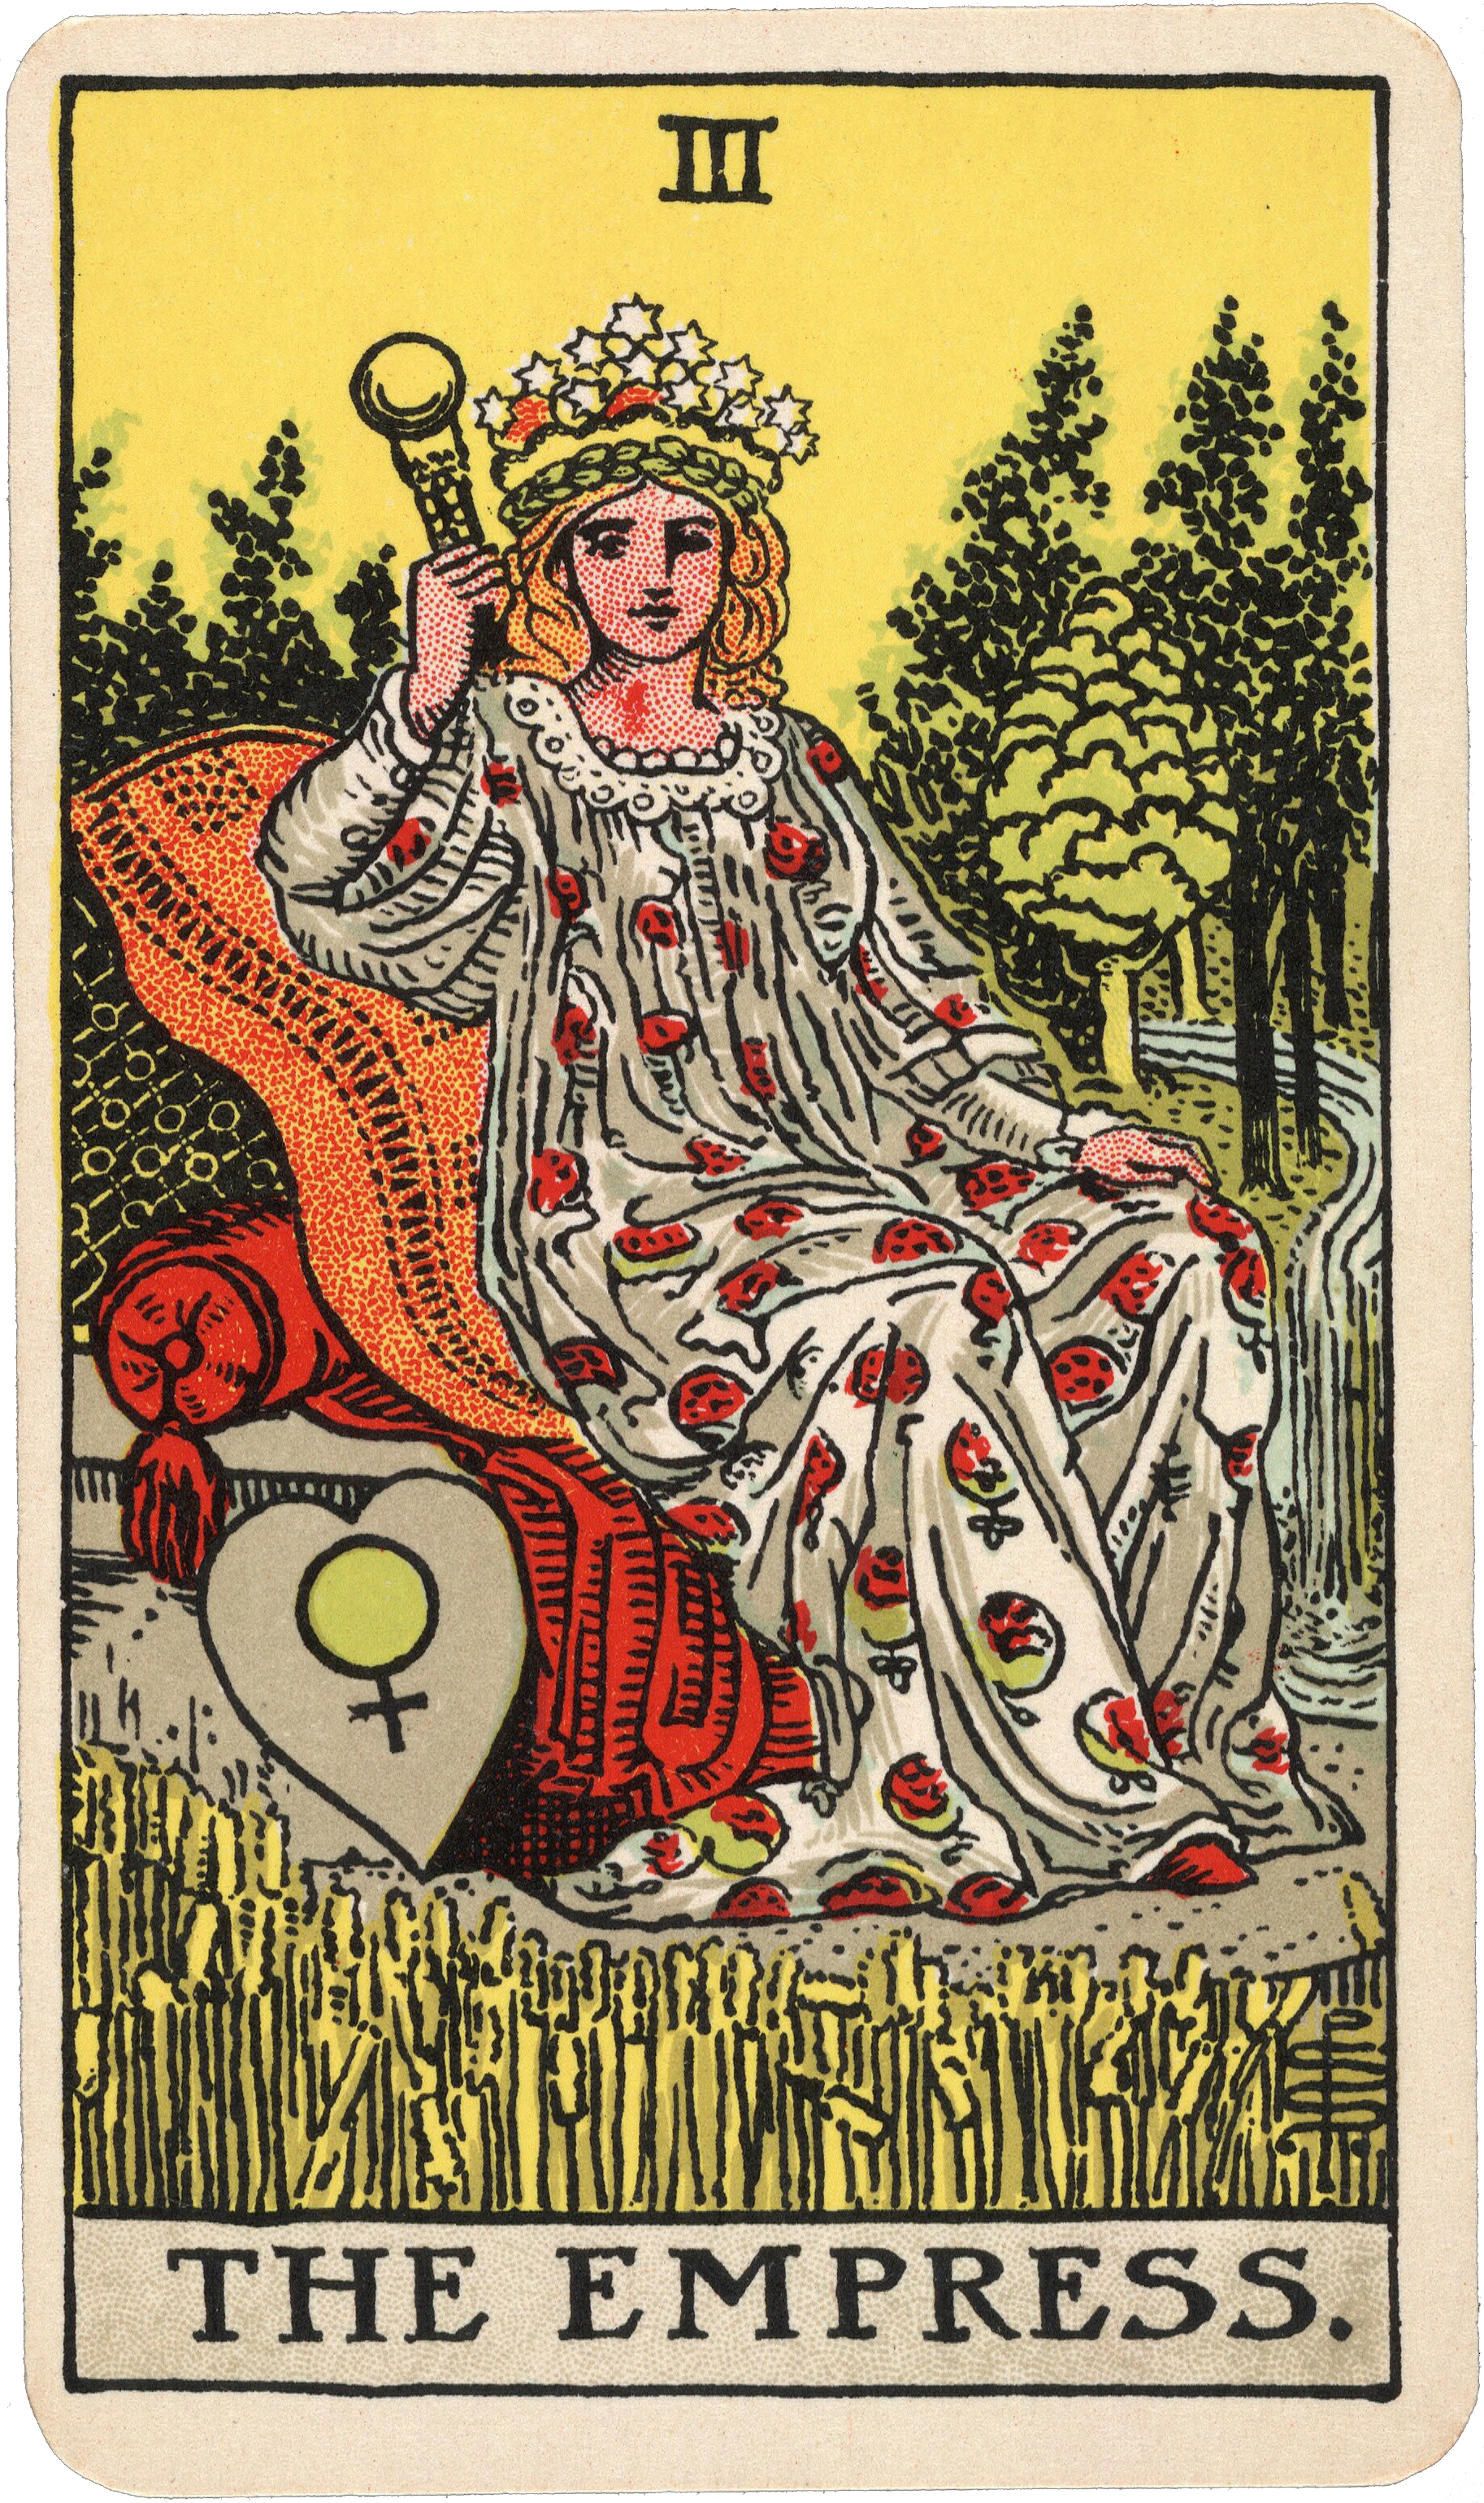 III The Empress from the Rider-Waite-Smith Tarot , Pamela Colman Smith Beinecke Rare Book and Manuscript Library, c. 1937